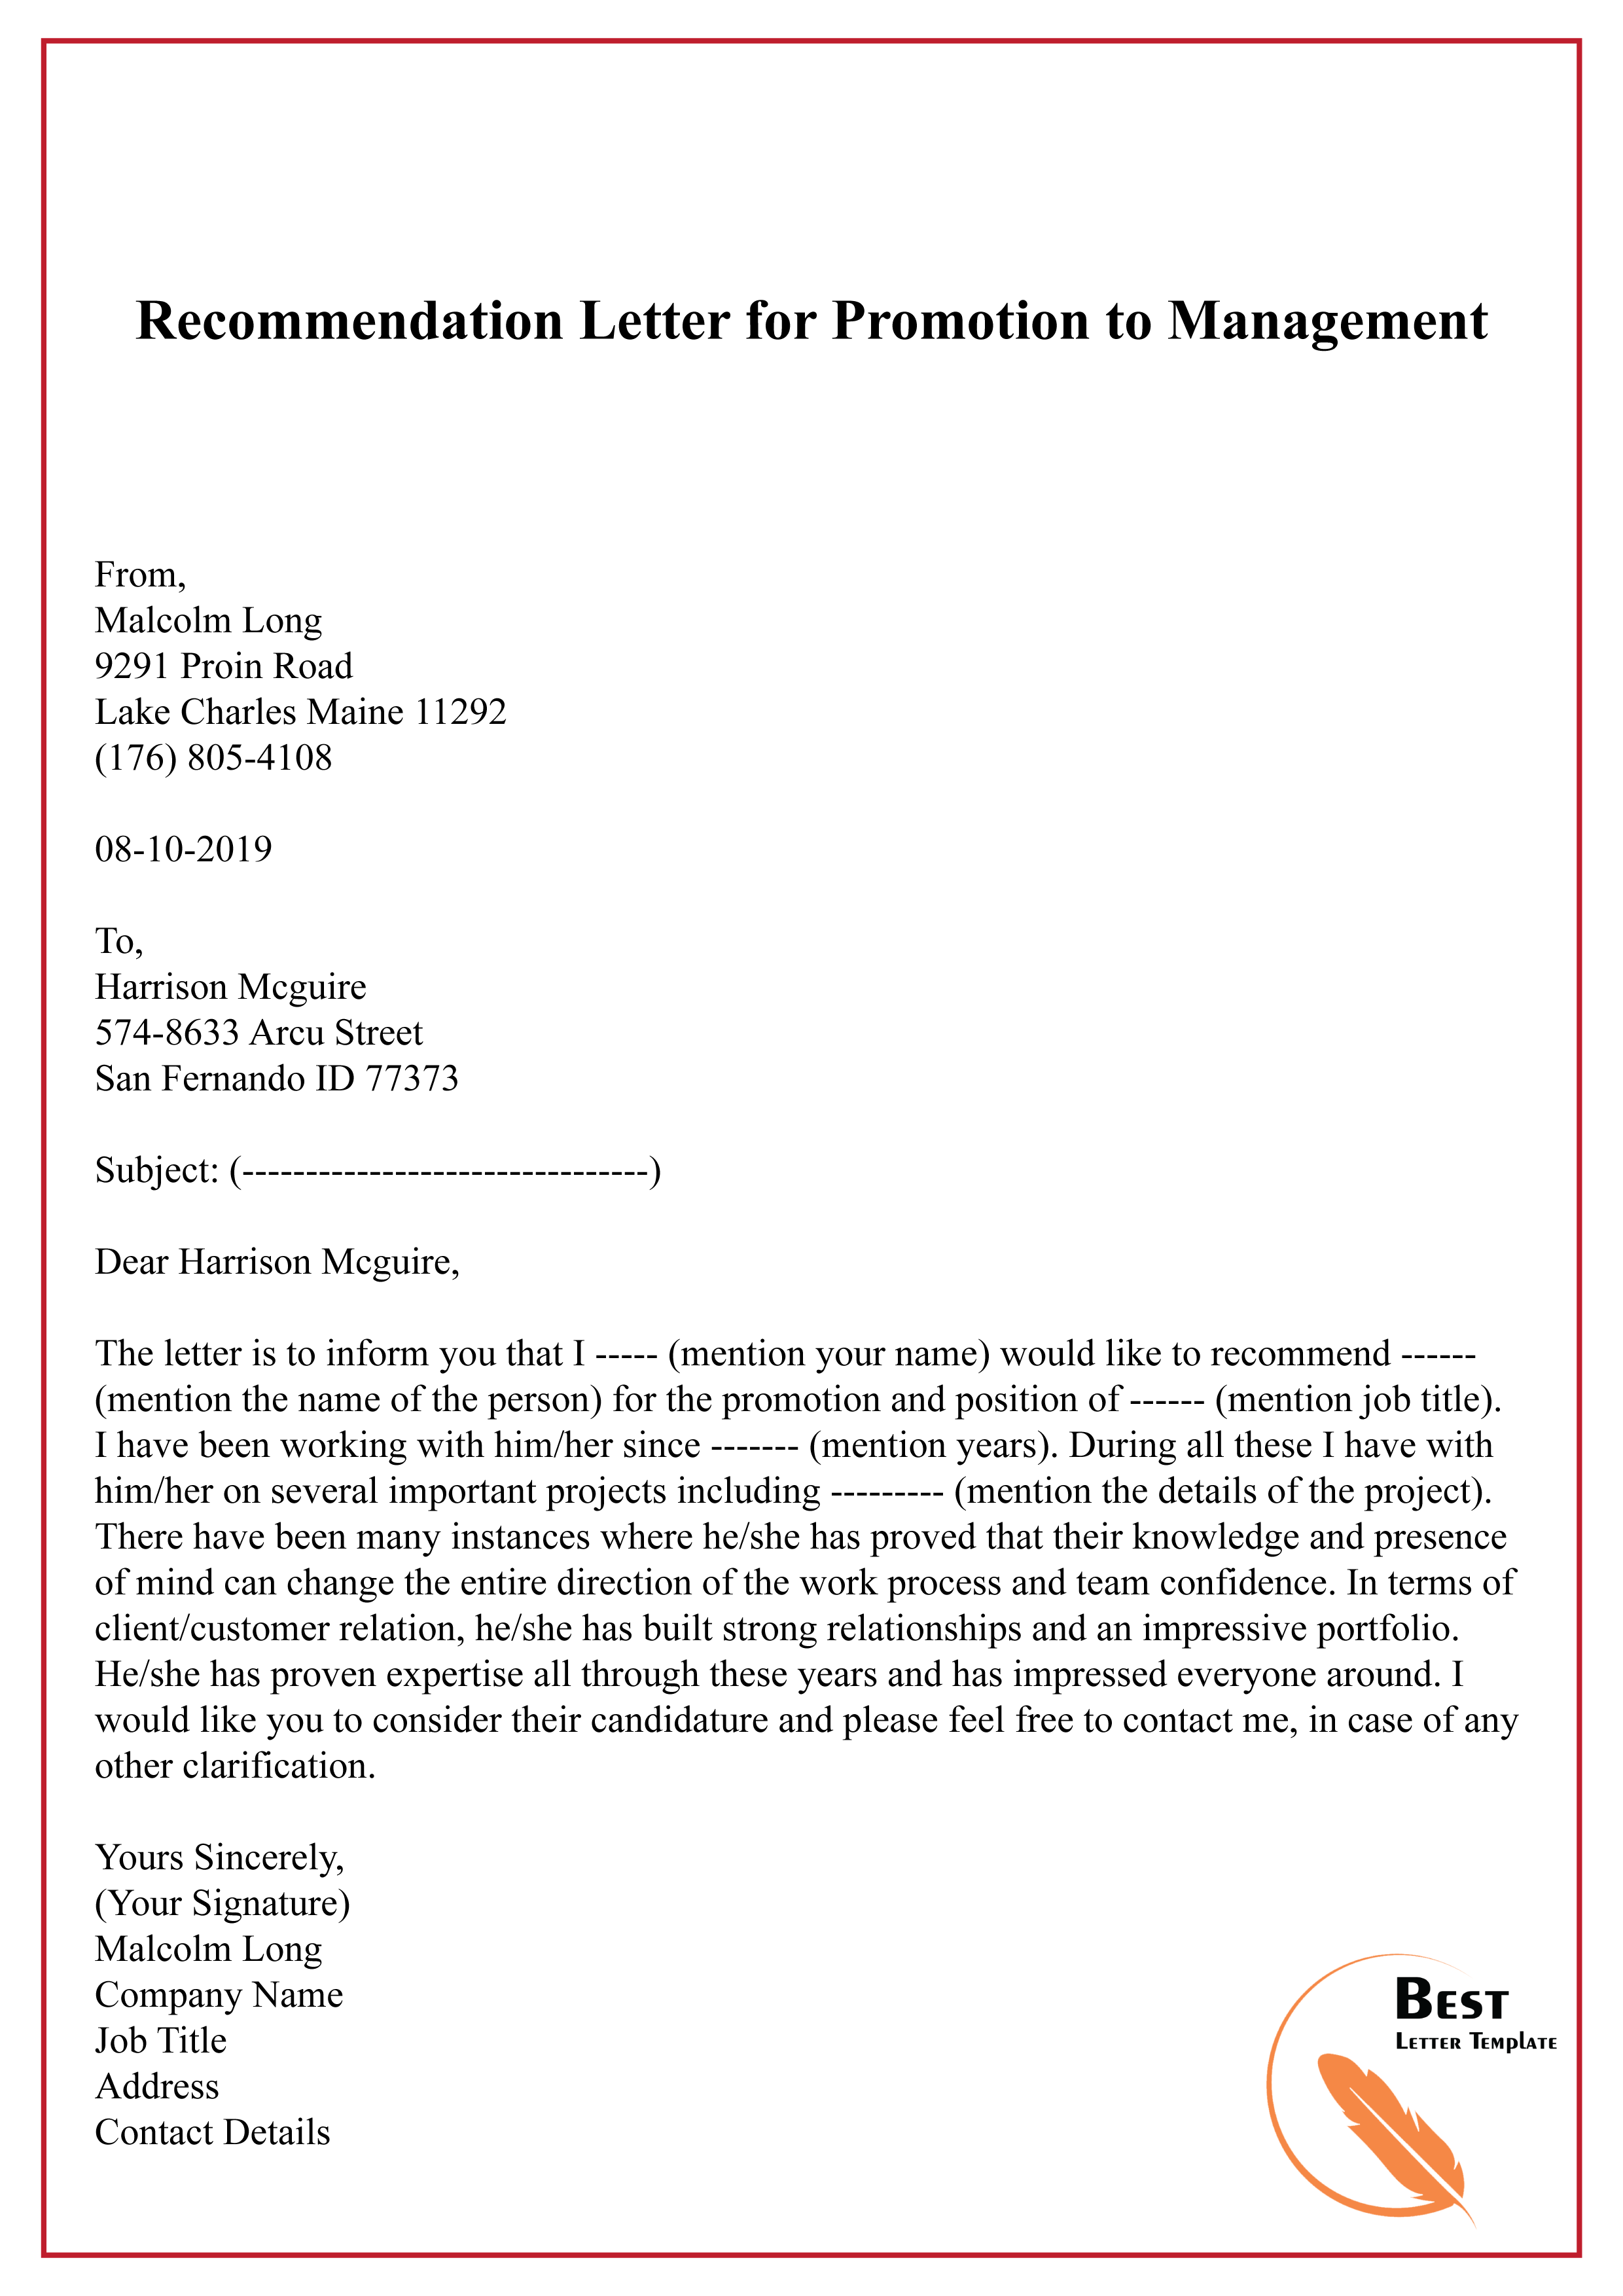 Template For Recommendation Letter from bestlettertemplate.com